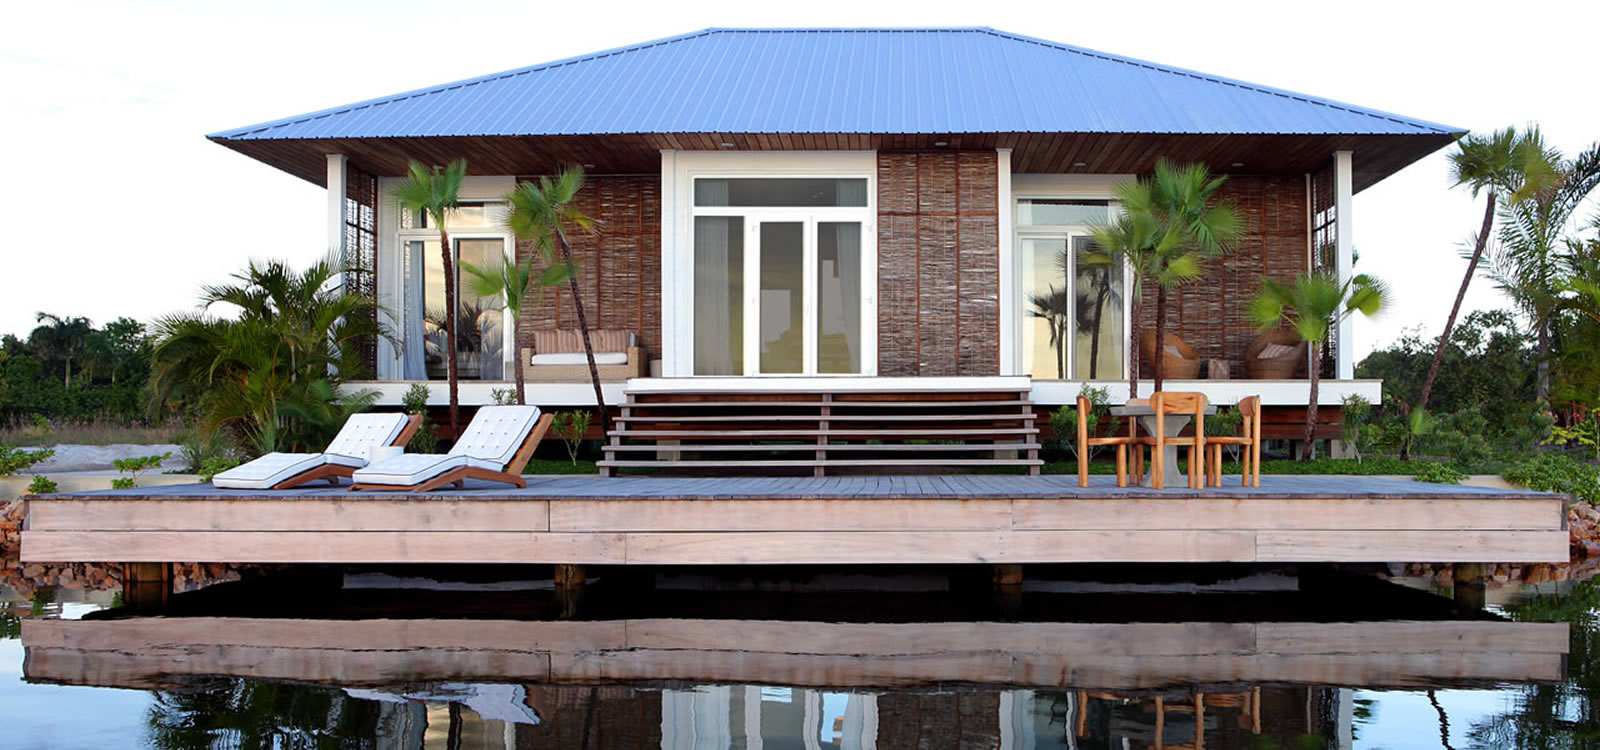 2 bedroom luxury lagoon cottage for sale placencia belize 7th heaven properties. Black Bedroom Furniture Sets. Home Design Ideas